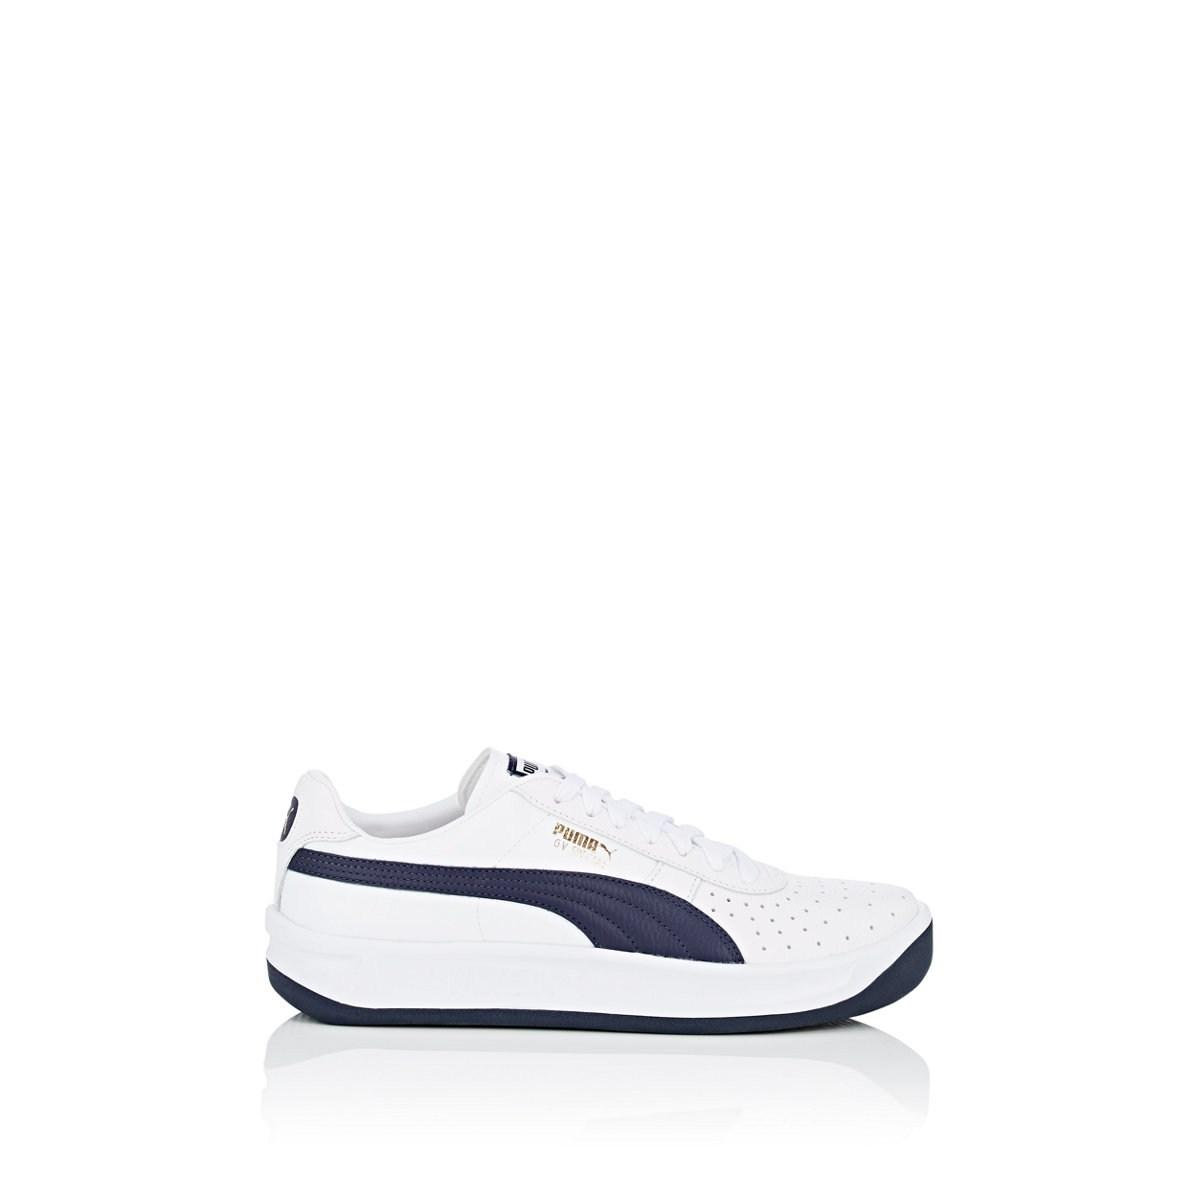 59e265f2f4d Lyst - PUMA Gv Special Leather Sneakers in White for Men